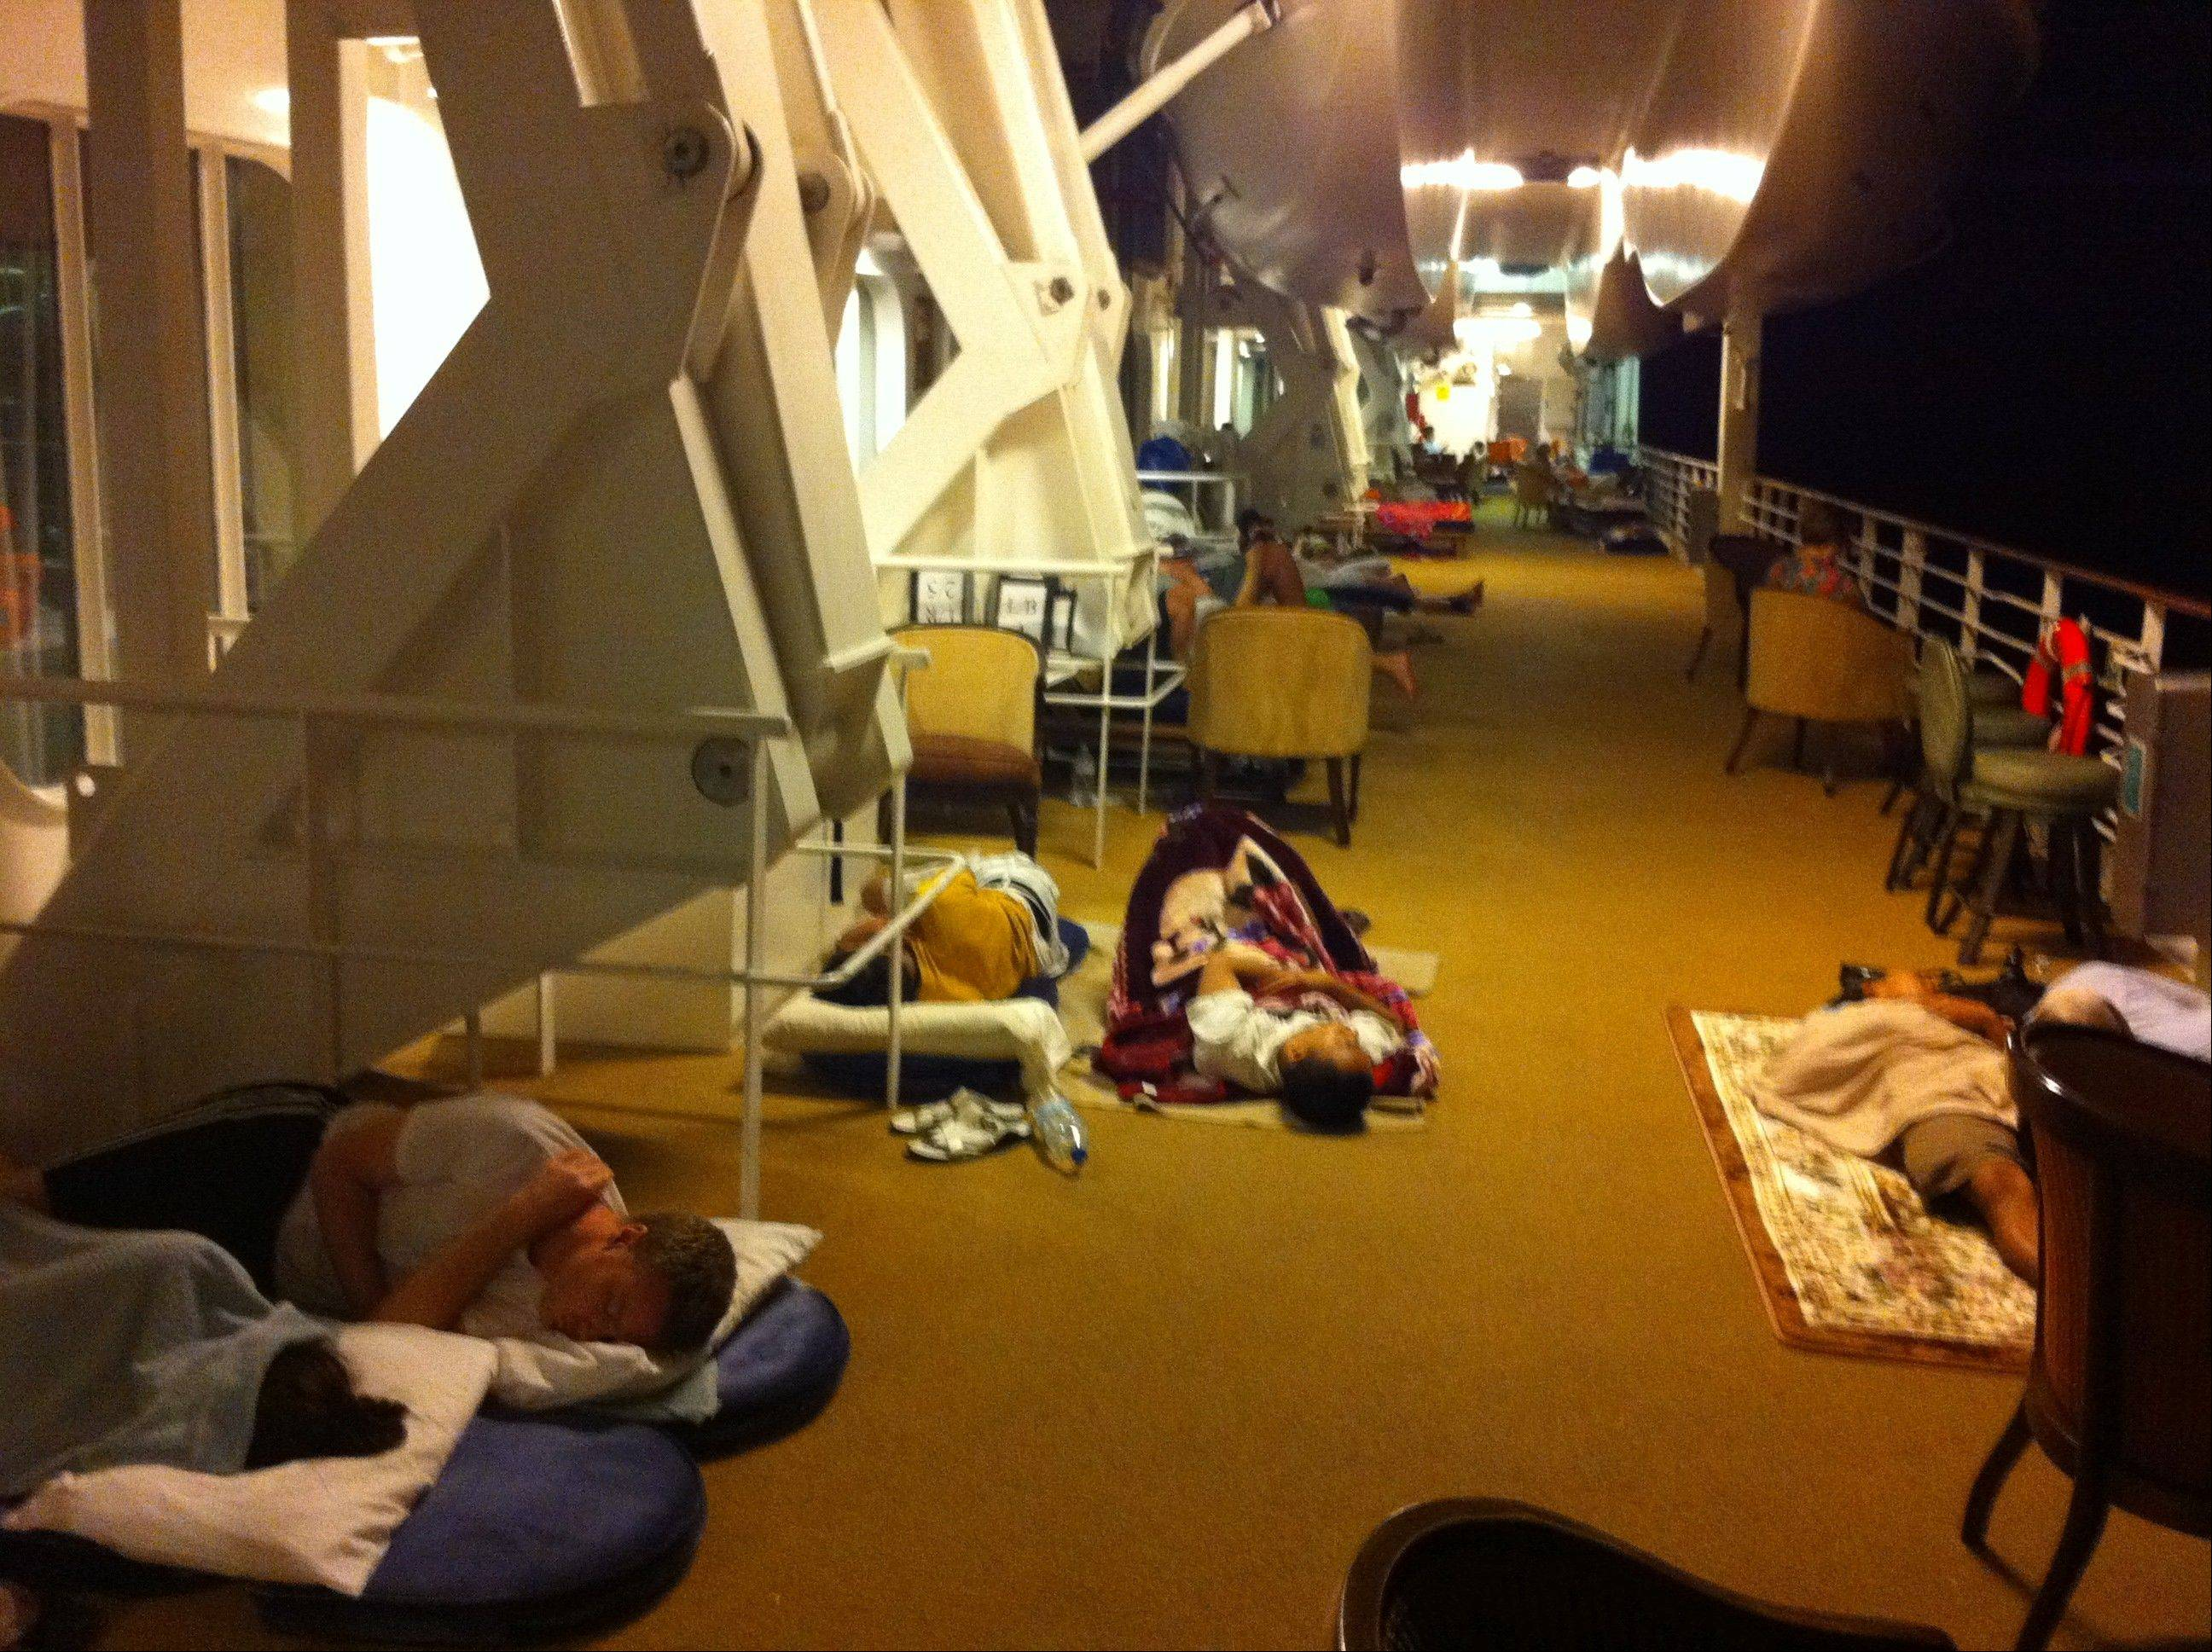 Passengers sleep (or try to) in hot conditions on the deck of the Azamara Quest after an engine fire. Glenview residents Bill and Elizabeth Coulson were aboard the cruise ship last month when the fire set it adrift in the Sulu Sea, near the Philippines, for 24 hours.